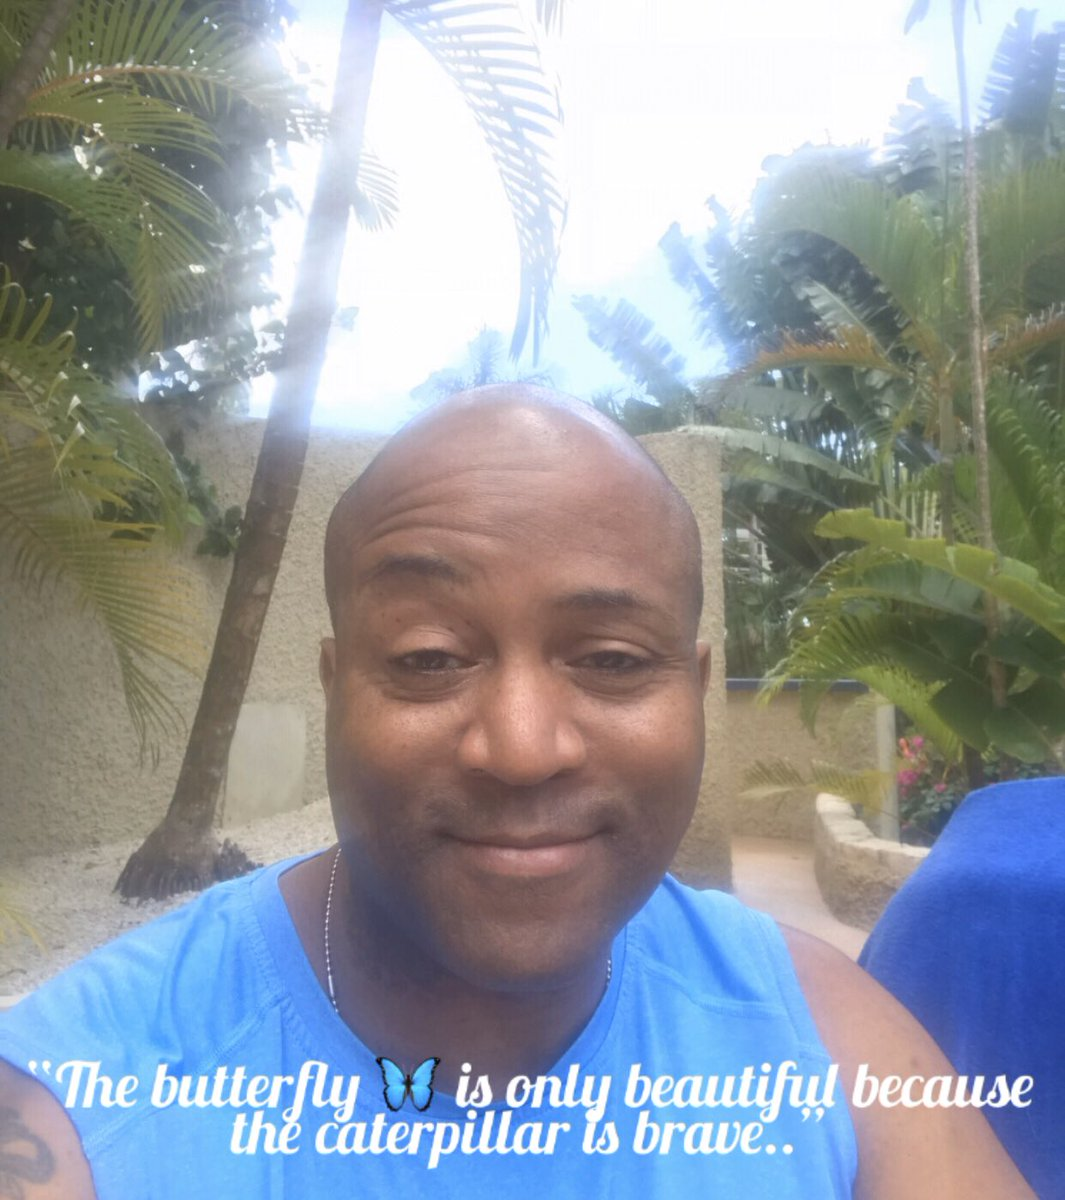 """""""I've always loved butterflies , because they remind us that it's never too late to transform ourselves..""""  #YouAreGoodEnough #LoveYourself #EmbraceTheJourney #SundayVibes #Peace #Jamaica #Jamaican #Taino #OwnYourLifepic.twitter.com/i8oCF41OaT"""